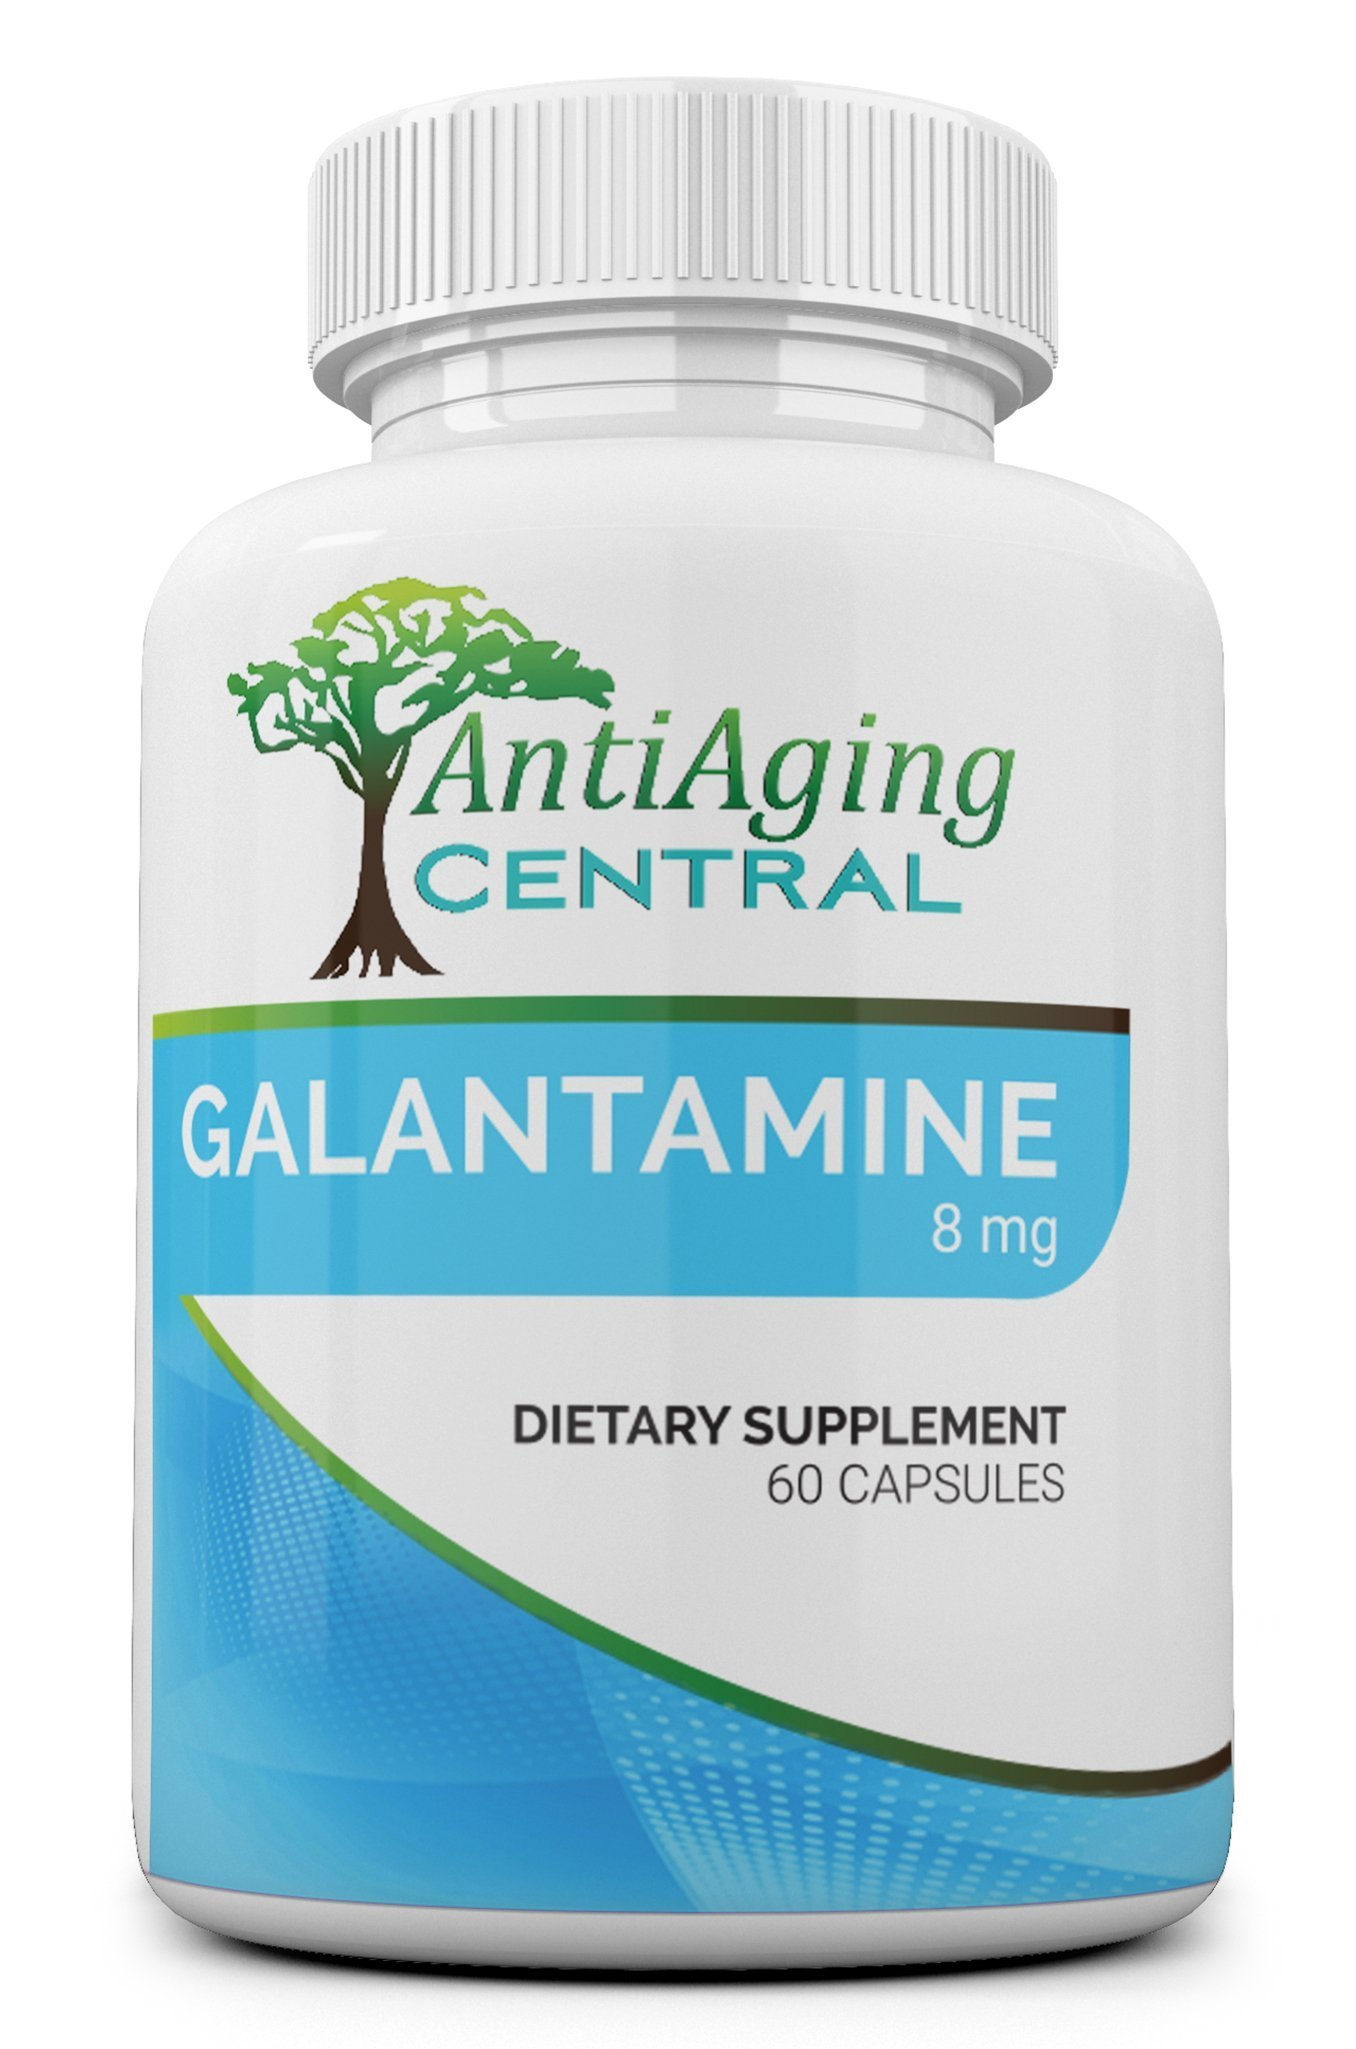 Galantamine 60 Capsules   8mg at 4mg Price Plus Free Shipping to The US